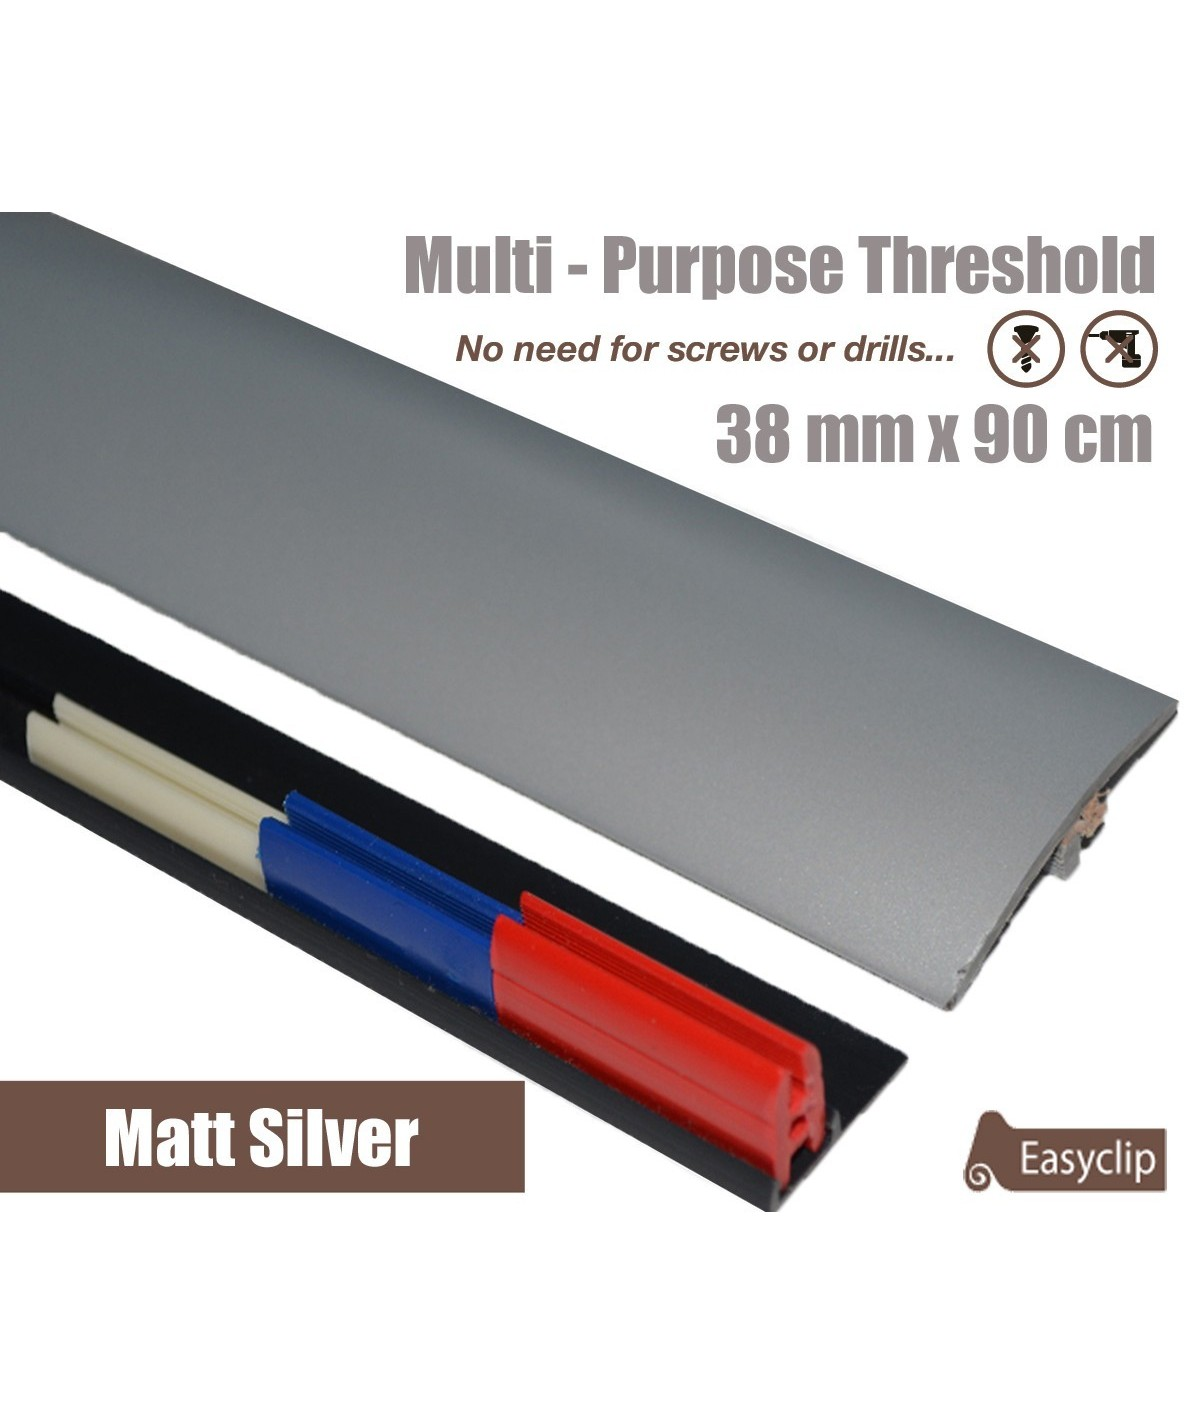 Matt Silver 38mm x 90cm Laminate Transition Threshold Strip Door Threshold Multi Purpose Easyclip Adhesive